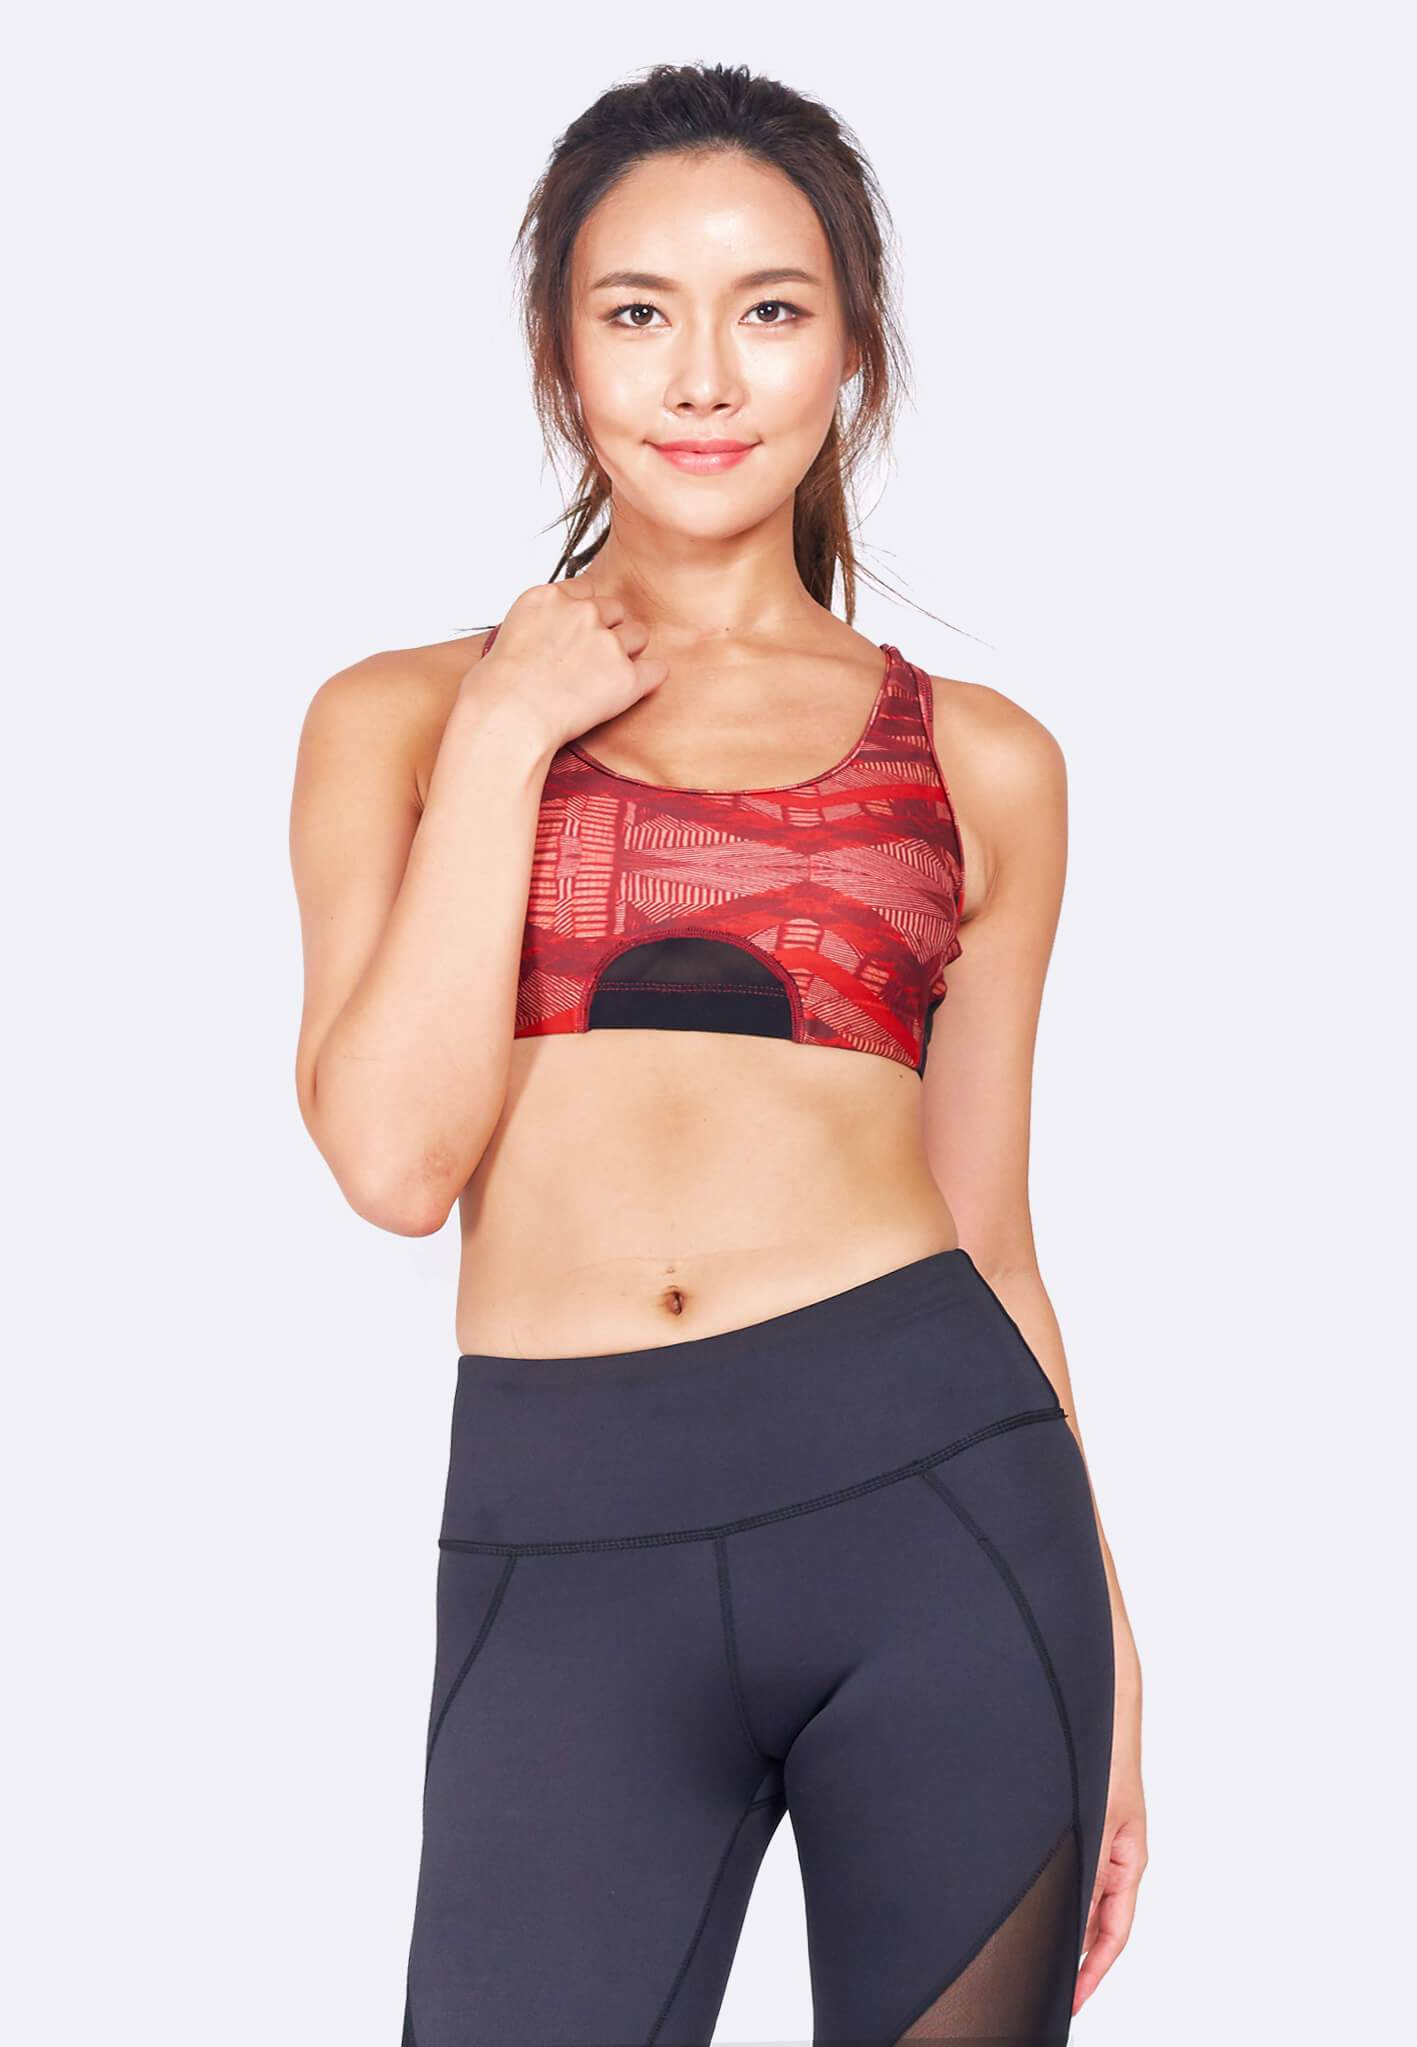 Knockout Racerback Sports Bra in Black/ Aeneas Print (XS - 2XL) - FUNFIT